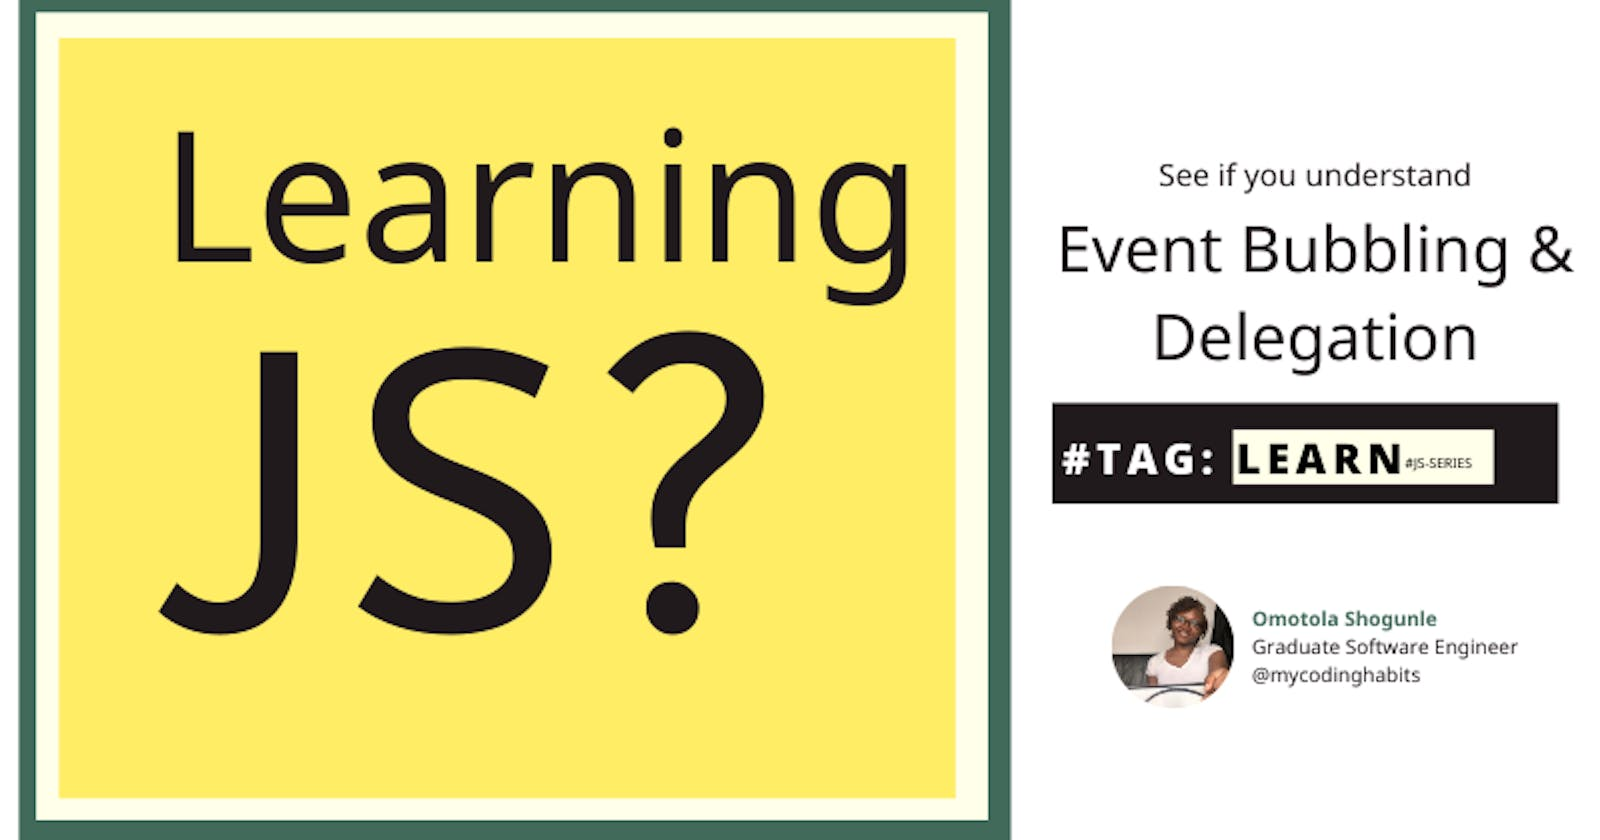 Learning JavaScript? Topic - Event Bubbling and Delegation